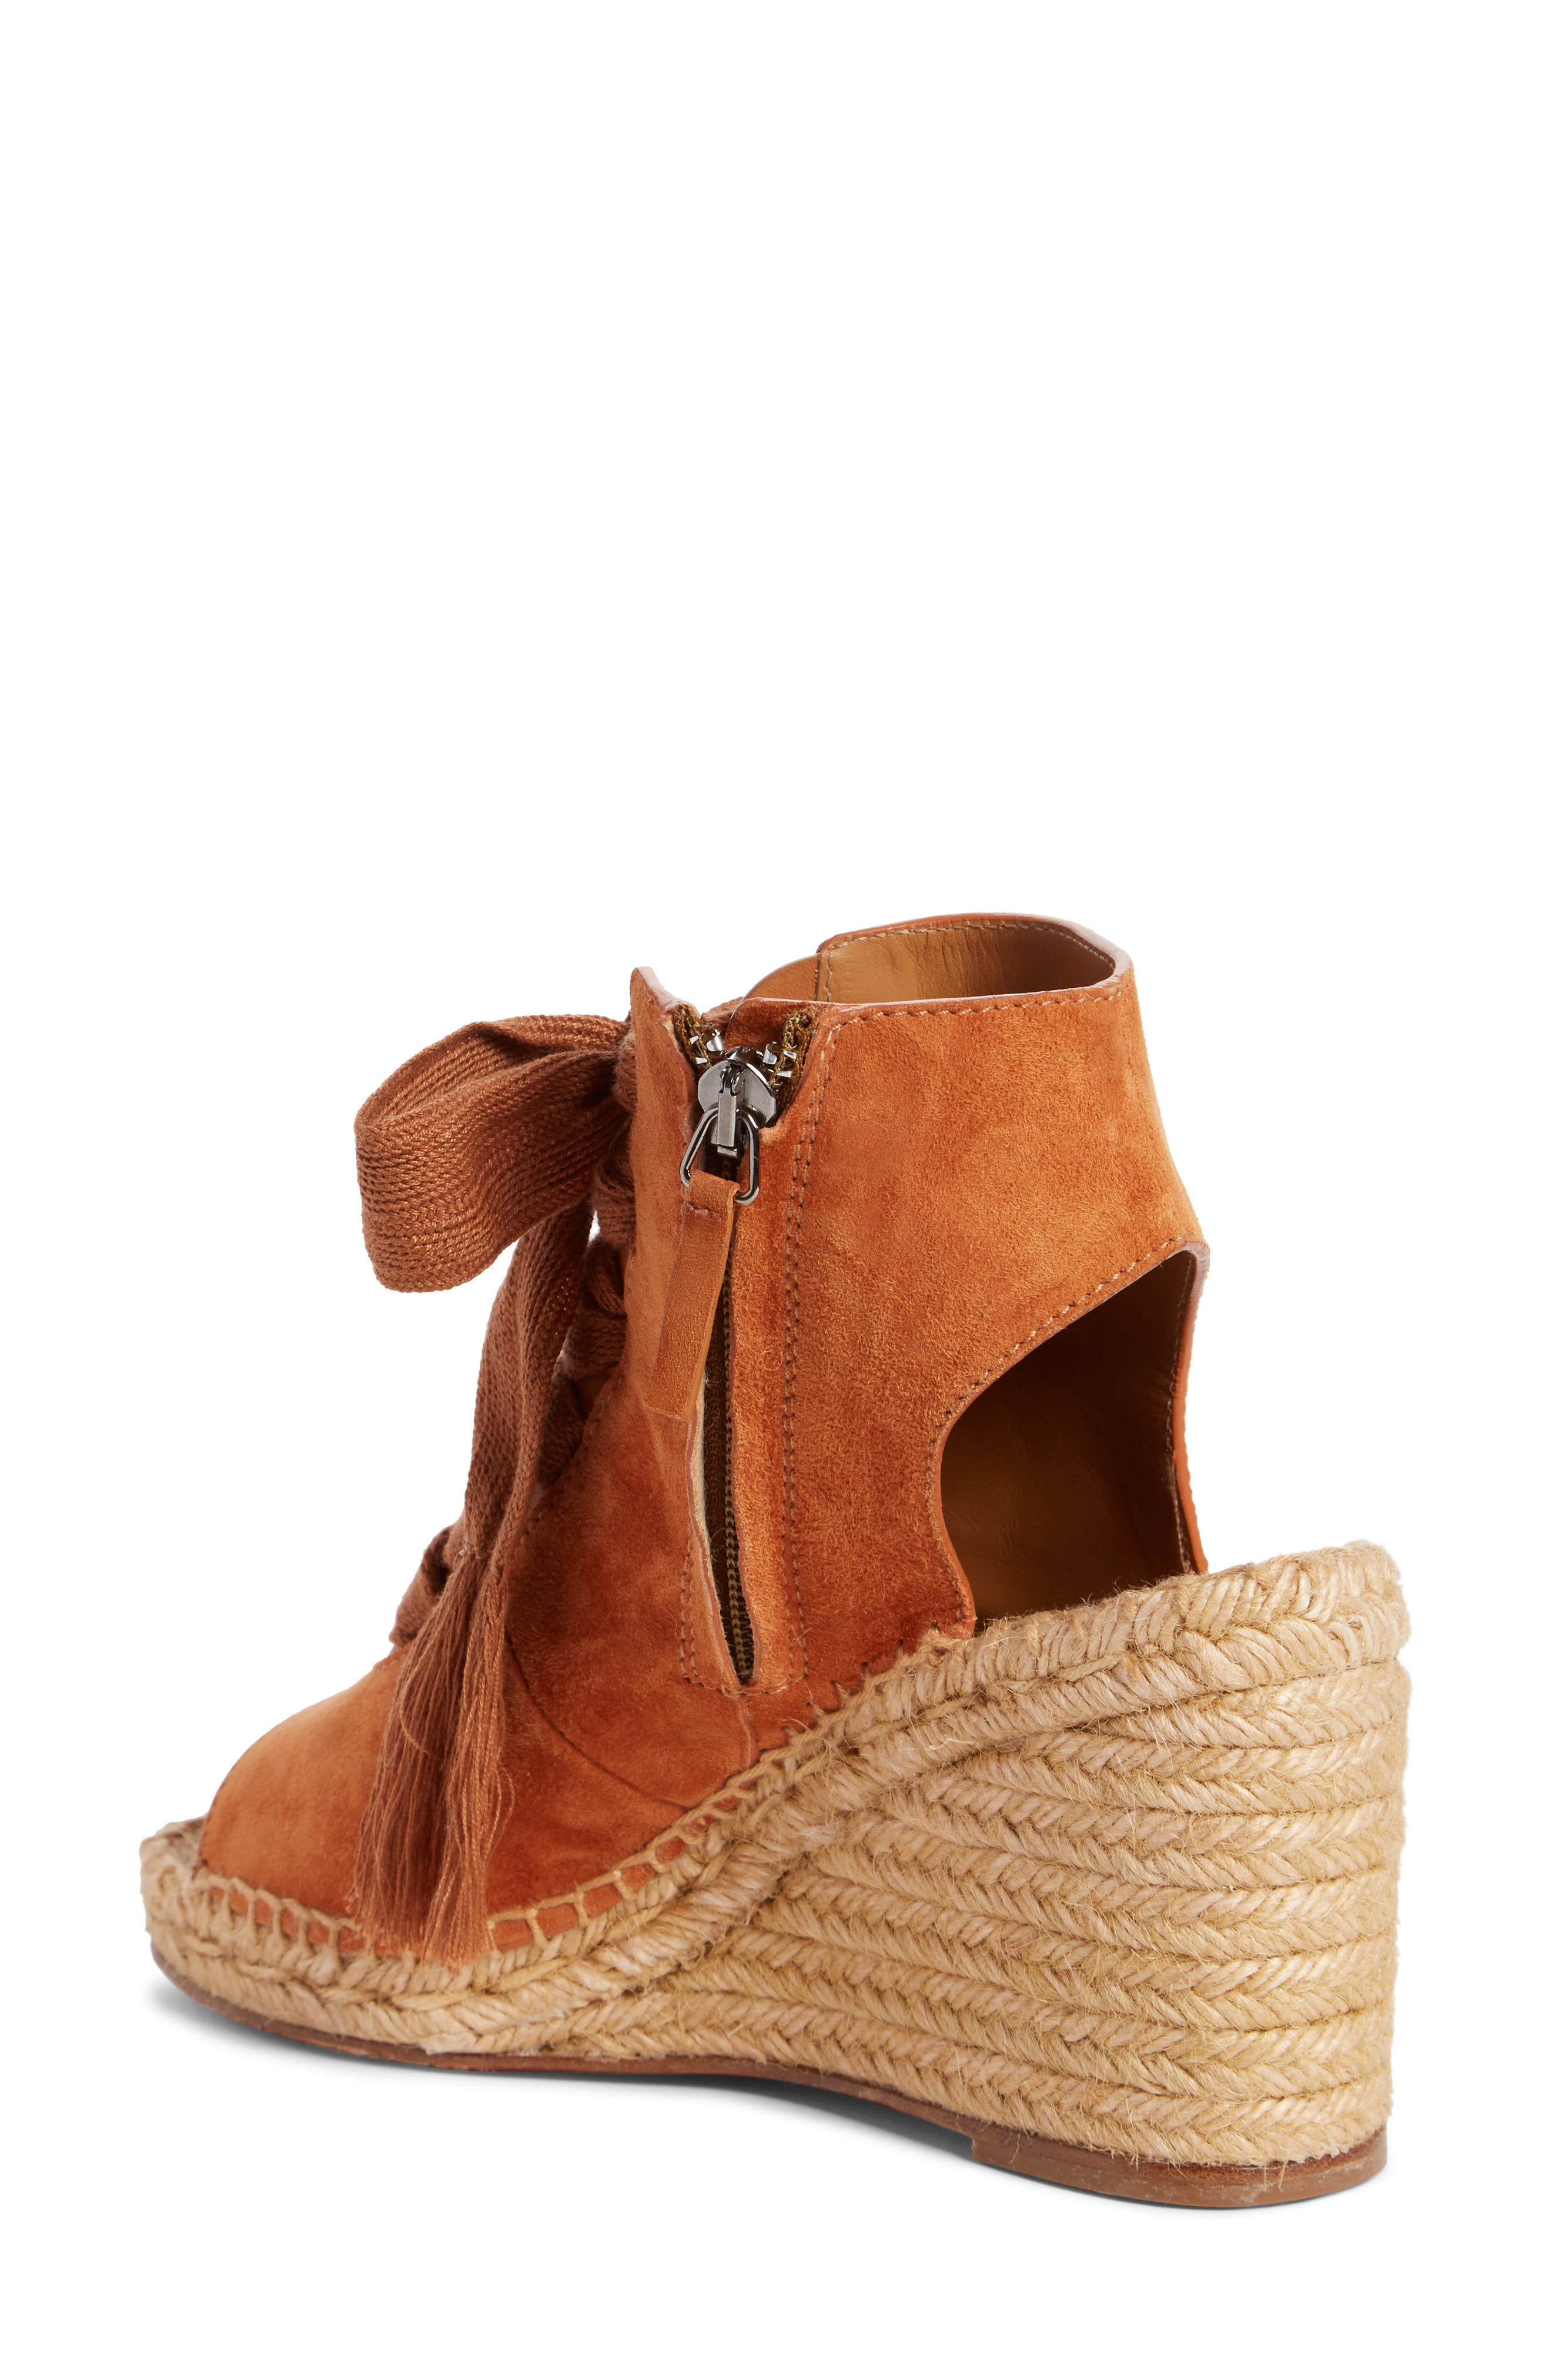 Harper Peep Toe Espadrille Bootie,                             Alternate thumbnail 4, color,